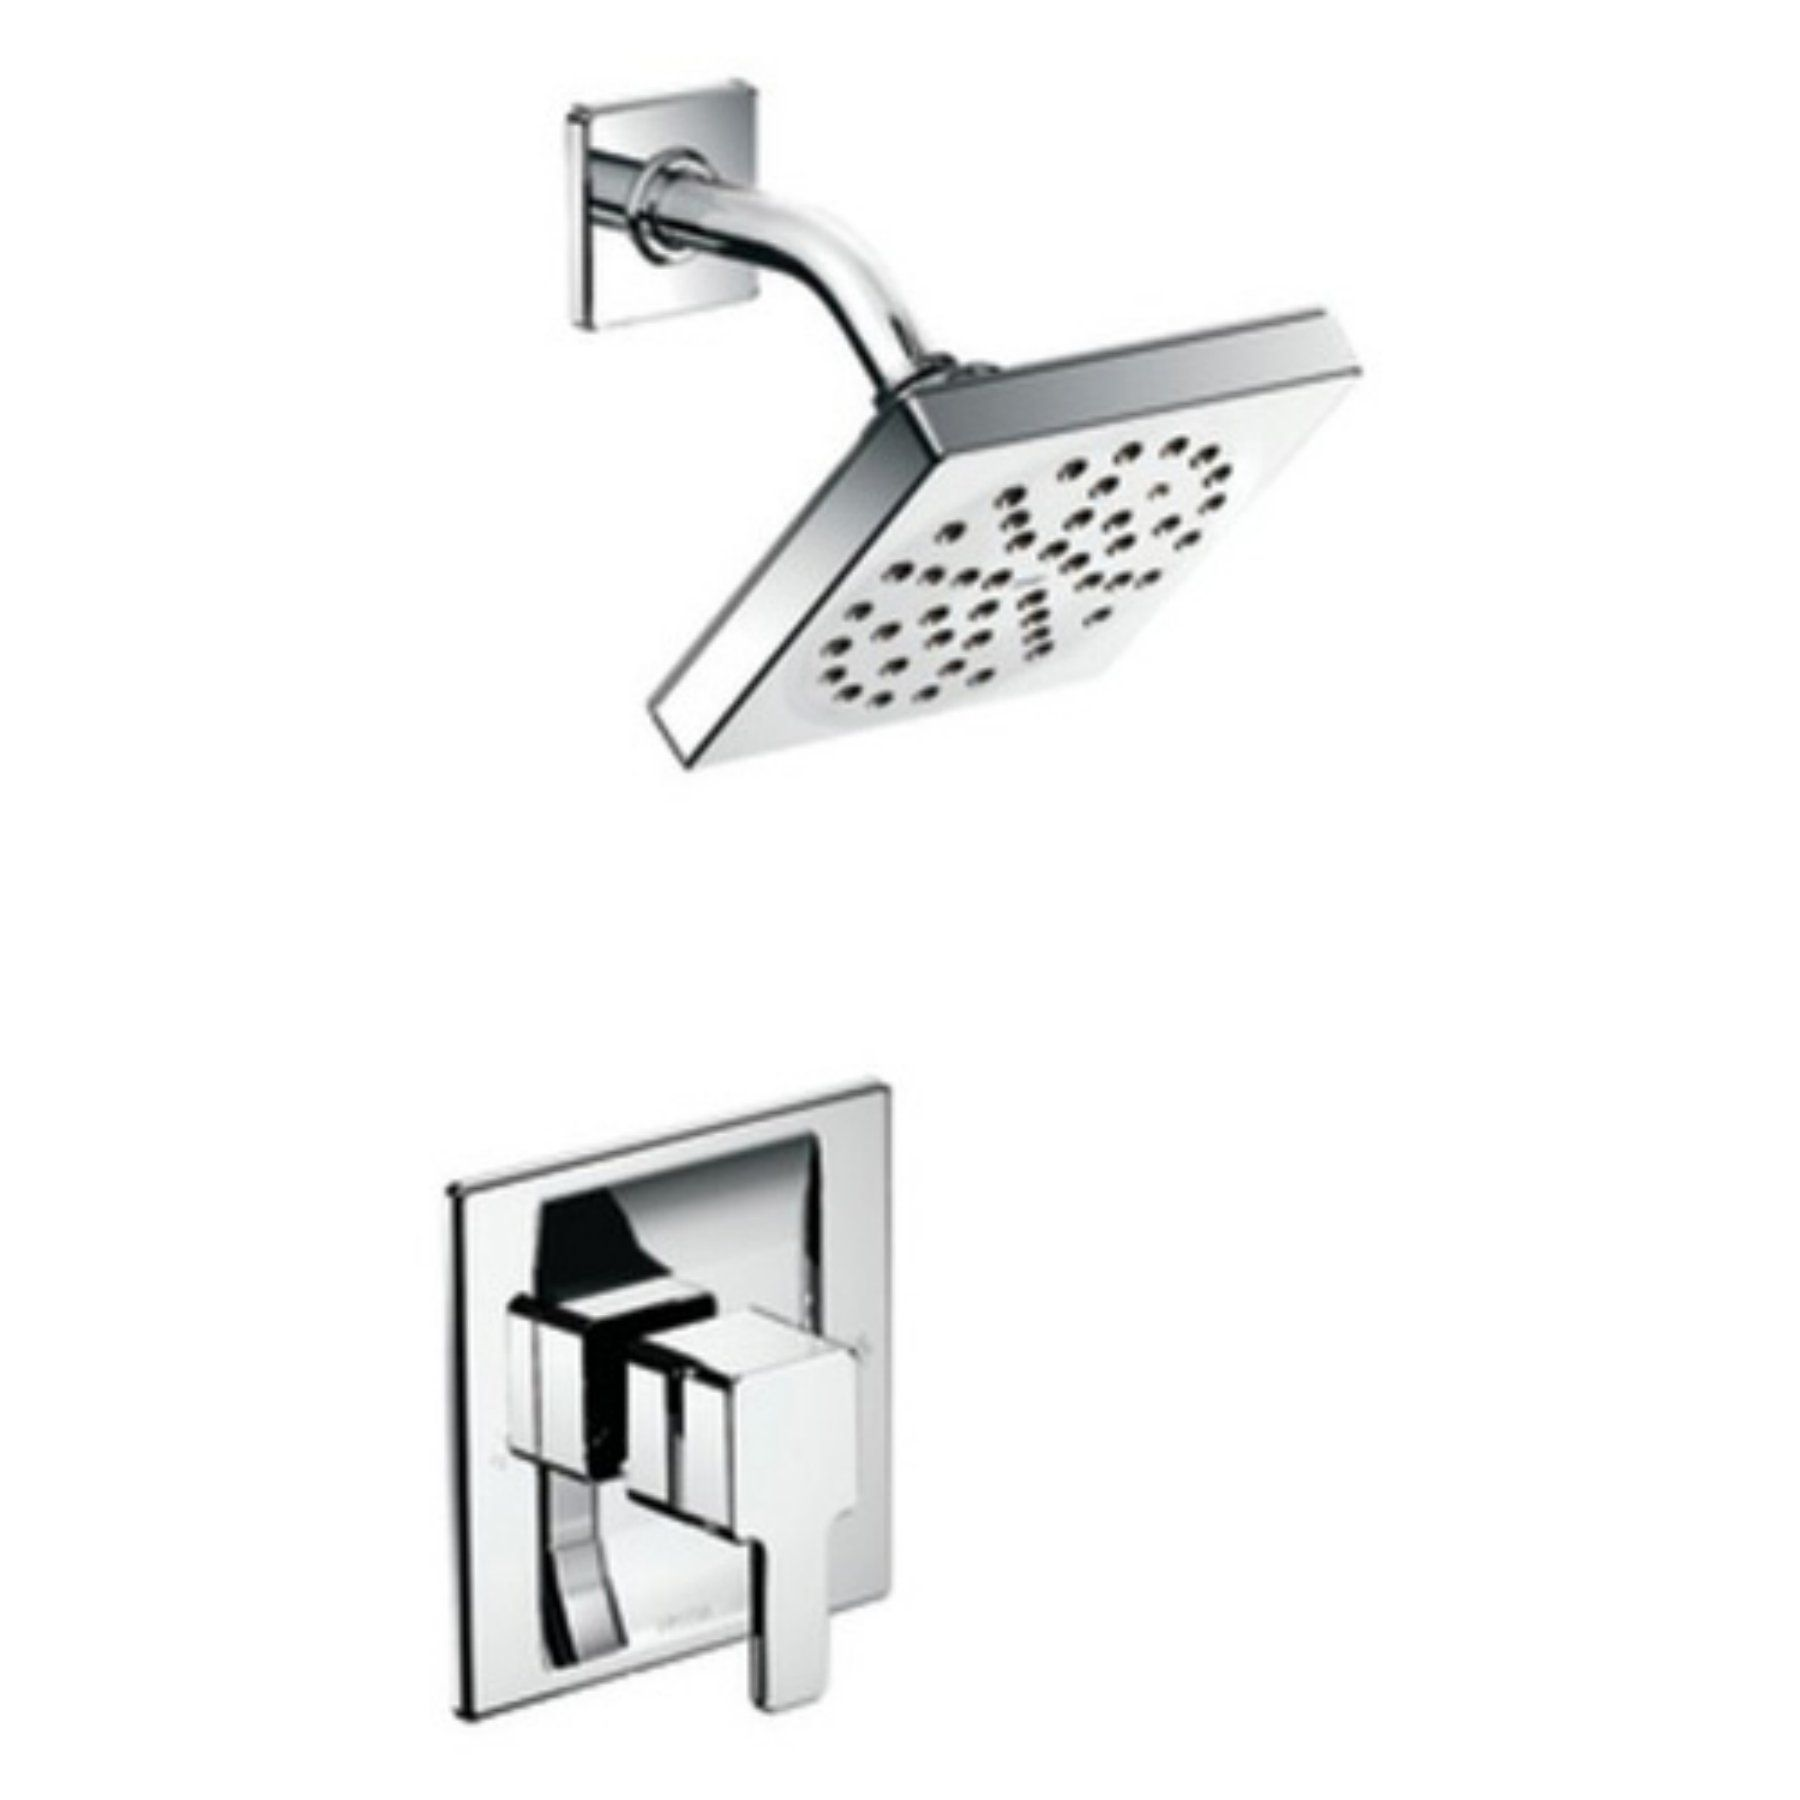 Moen 90 Degree Ts3715 Moentrol Shower Set Shower Faucet Tub